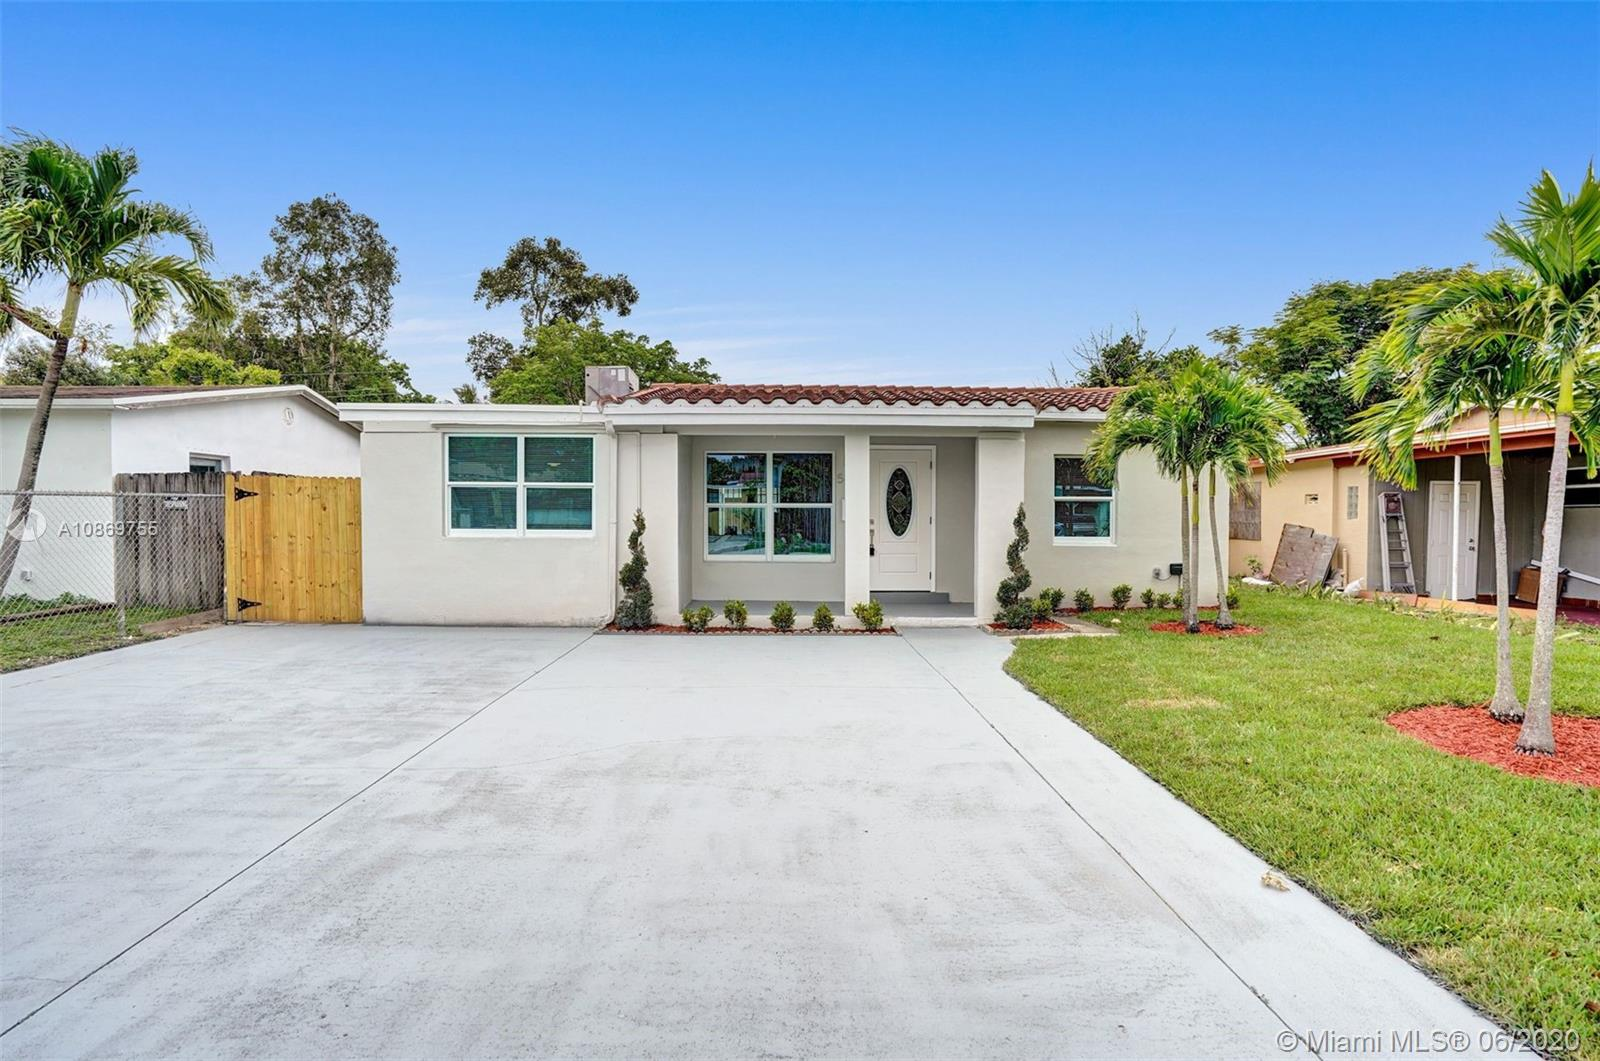 BEAUTIFULLY FULLY REMODELED 4/2 HOME WITH LARGE POOL IN THE HEART OF OAKLAND PARK! PERFECT TURN-KEY STARTER HOME OR VACATION RENTAL OPPORTUNITY! HOME FEATURES ALL HURRICANE IMPACT WINDOWS AND DOORS, 2012 SHINGLE ROOF, 2007 A/C UNIT, BRAND NEW TANKLESS WATER HEATER, NEW BATHROOMS, BRAND NEW WHIRLPOOL WASHER AND DRYER, NEW SPRINKLERS SYSTEM WITH NEW GRASS. NEW CUSTOM KITCHEN WITH HIGH-END EUROPEAN CABINETS, QUARTZ COUNTERTOP AND BRAND NEW STAINLESS STEEL APPLIANCES, RECESSED LIGHTING THROUGHOUT, BACKYARD WITH LARGE POOL NICE FOR ENTERTAINMENT, SPACIOUS DRIVEWAY, FRESHLY PAINTED INSIDE/OUT... MINUTES FROM SCHOOLS, BEACH, SHOPPING PLAZAS ETC... HURRY THIS WONT LAST LONG!!